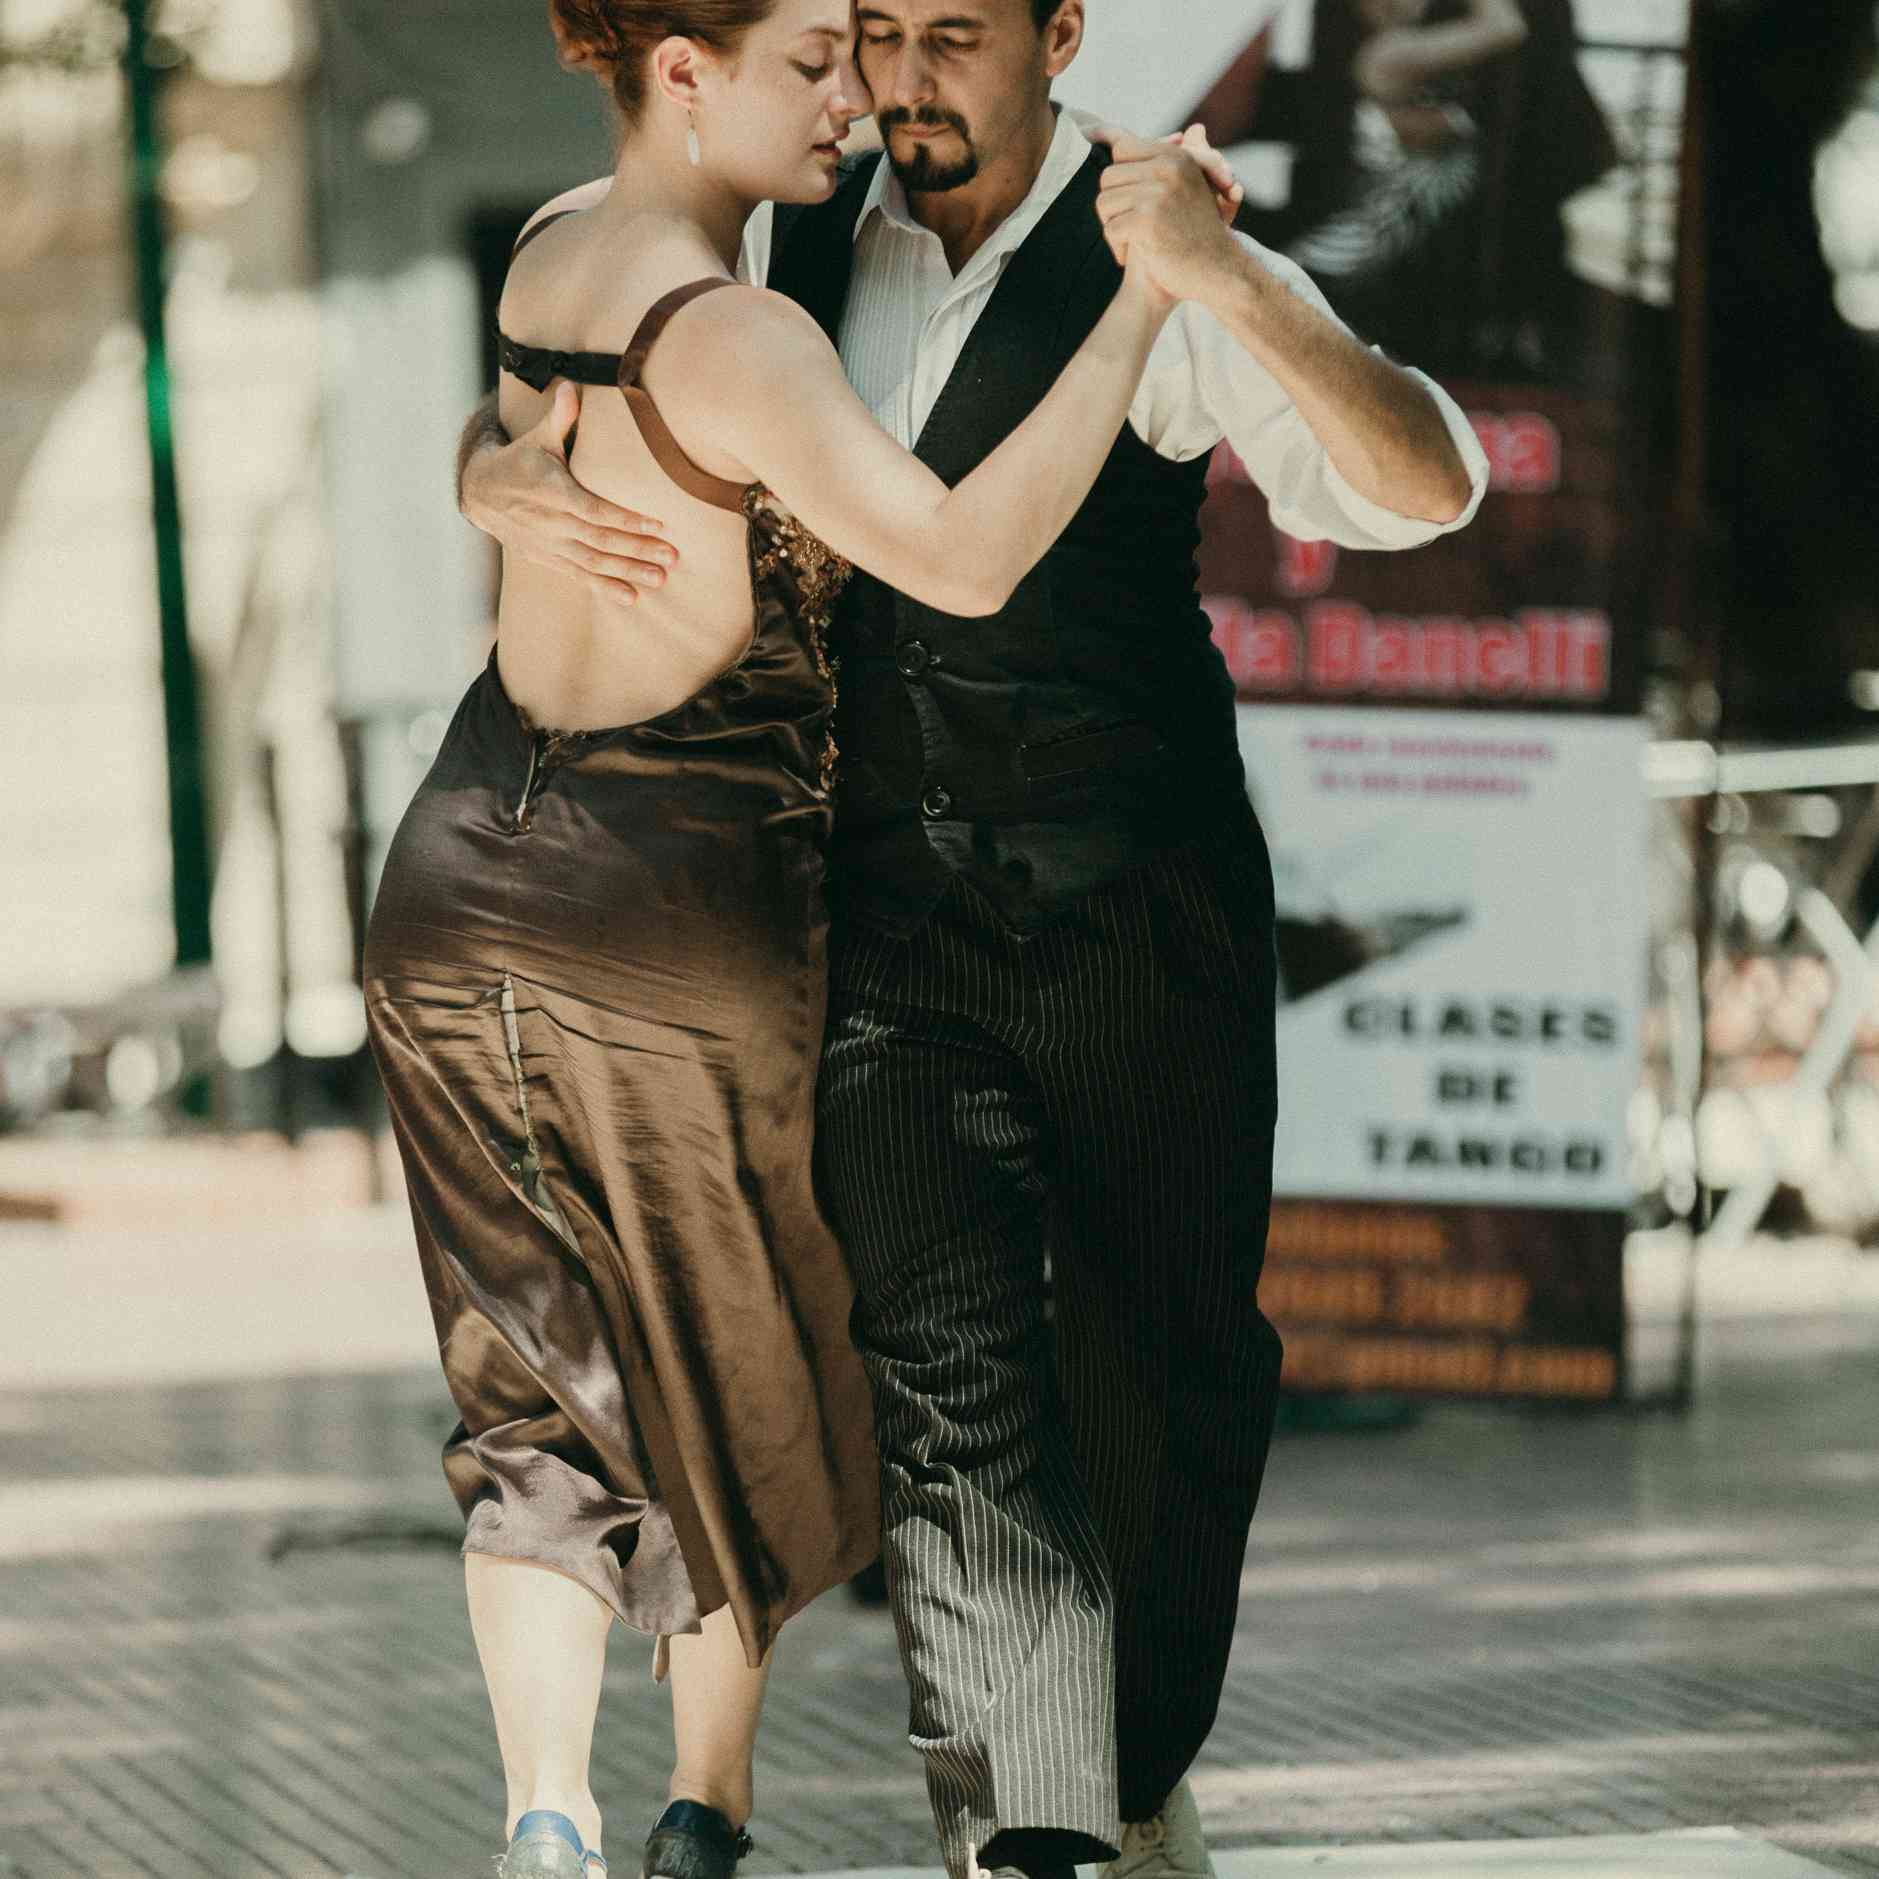 People dancing tango in Buenos Aires